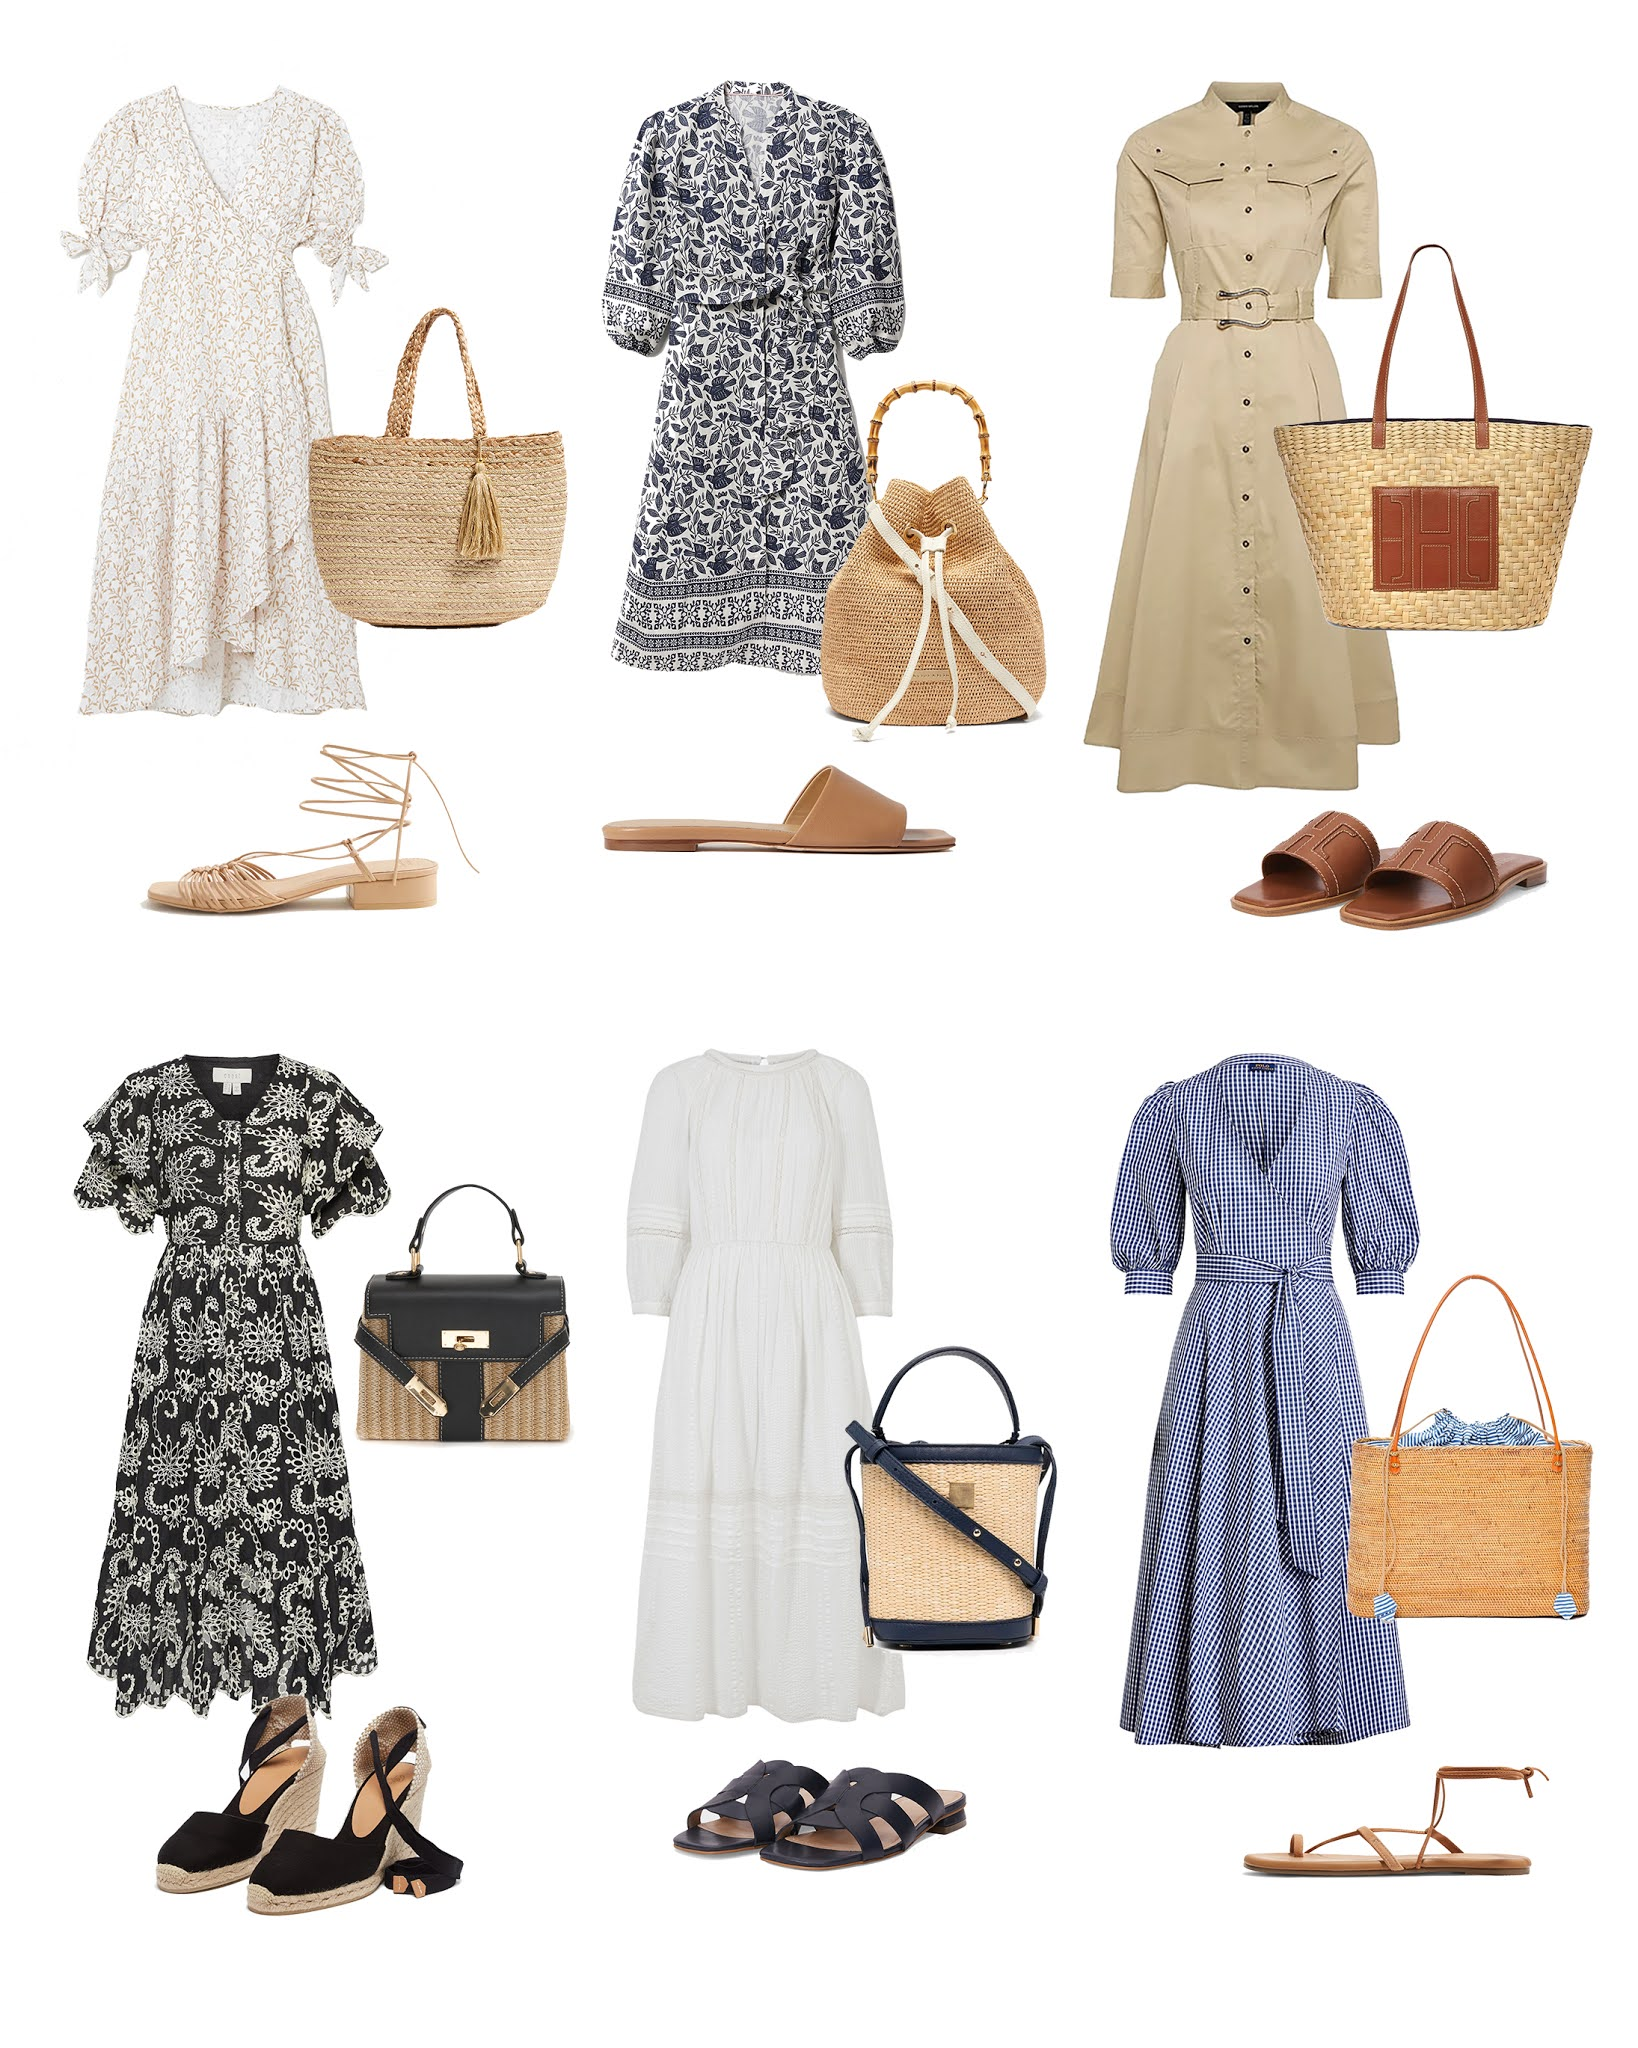 summer-dresses-classic-style-outfit-inspiration